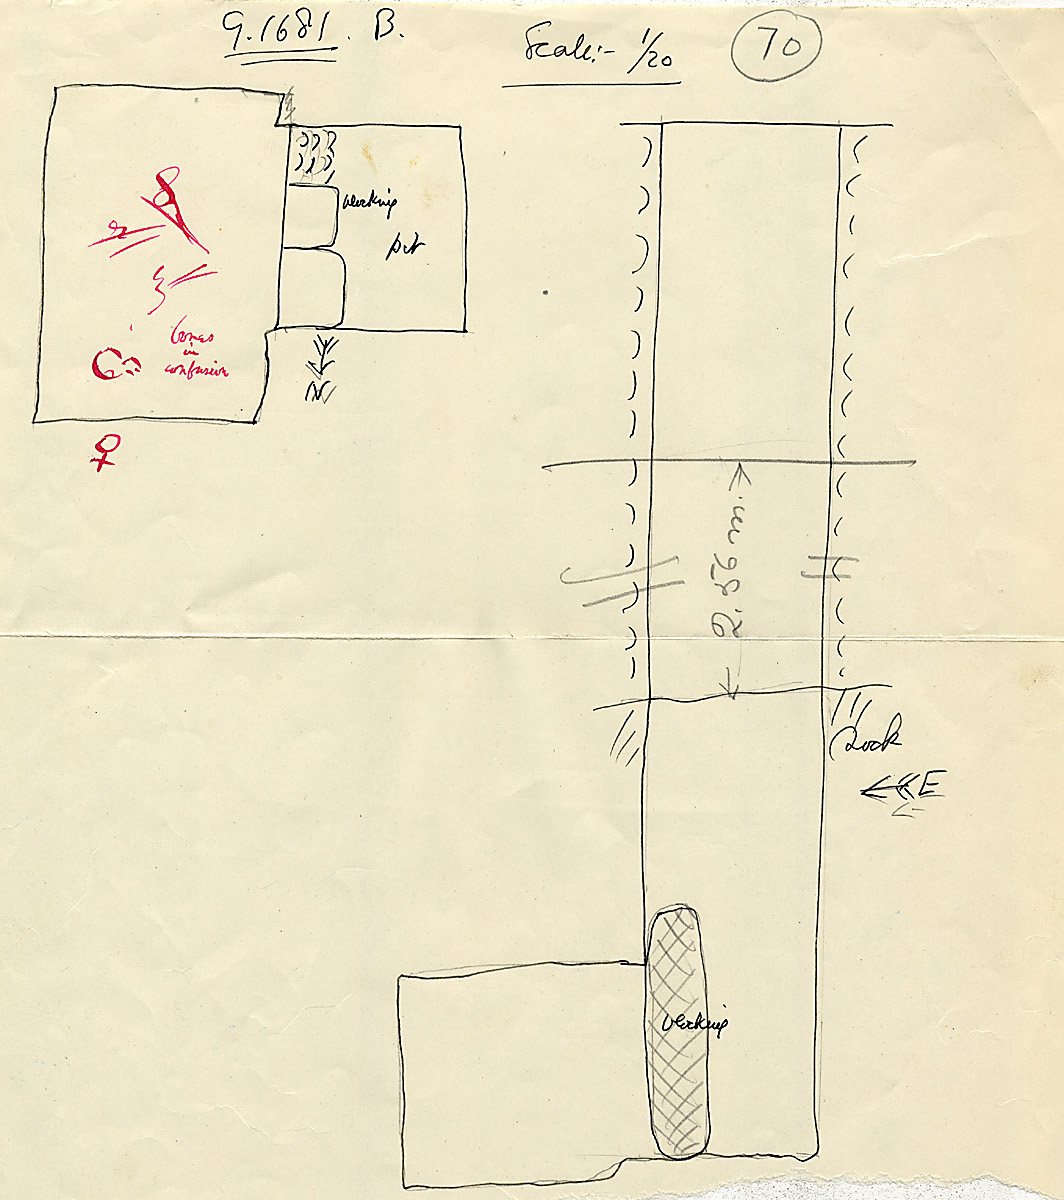 Maps and plans: G 1681, Shaft B